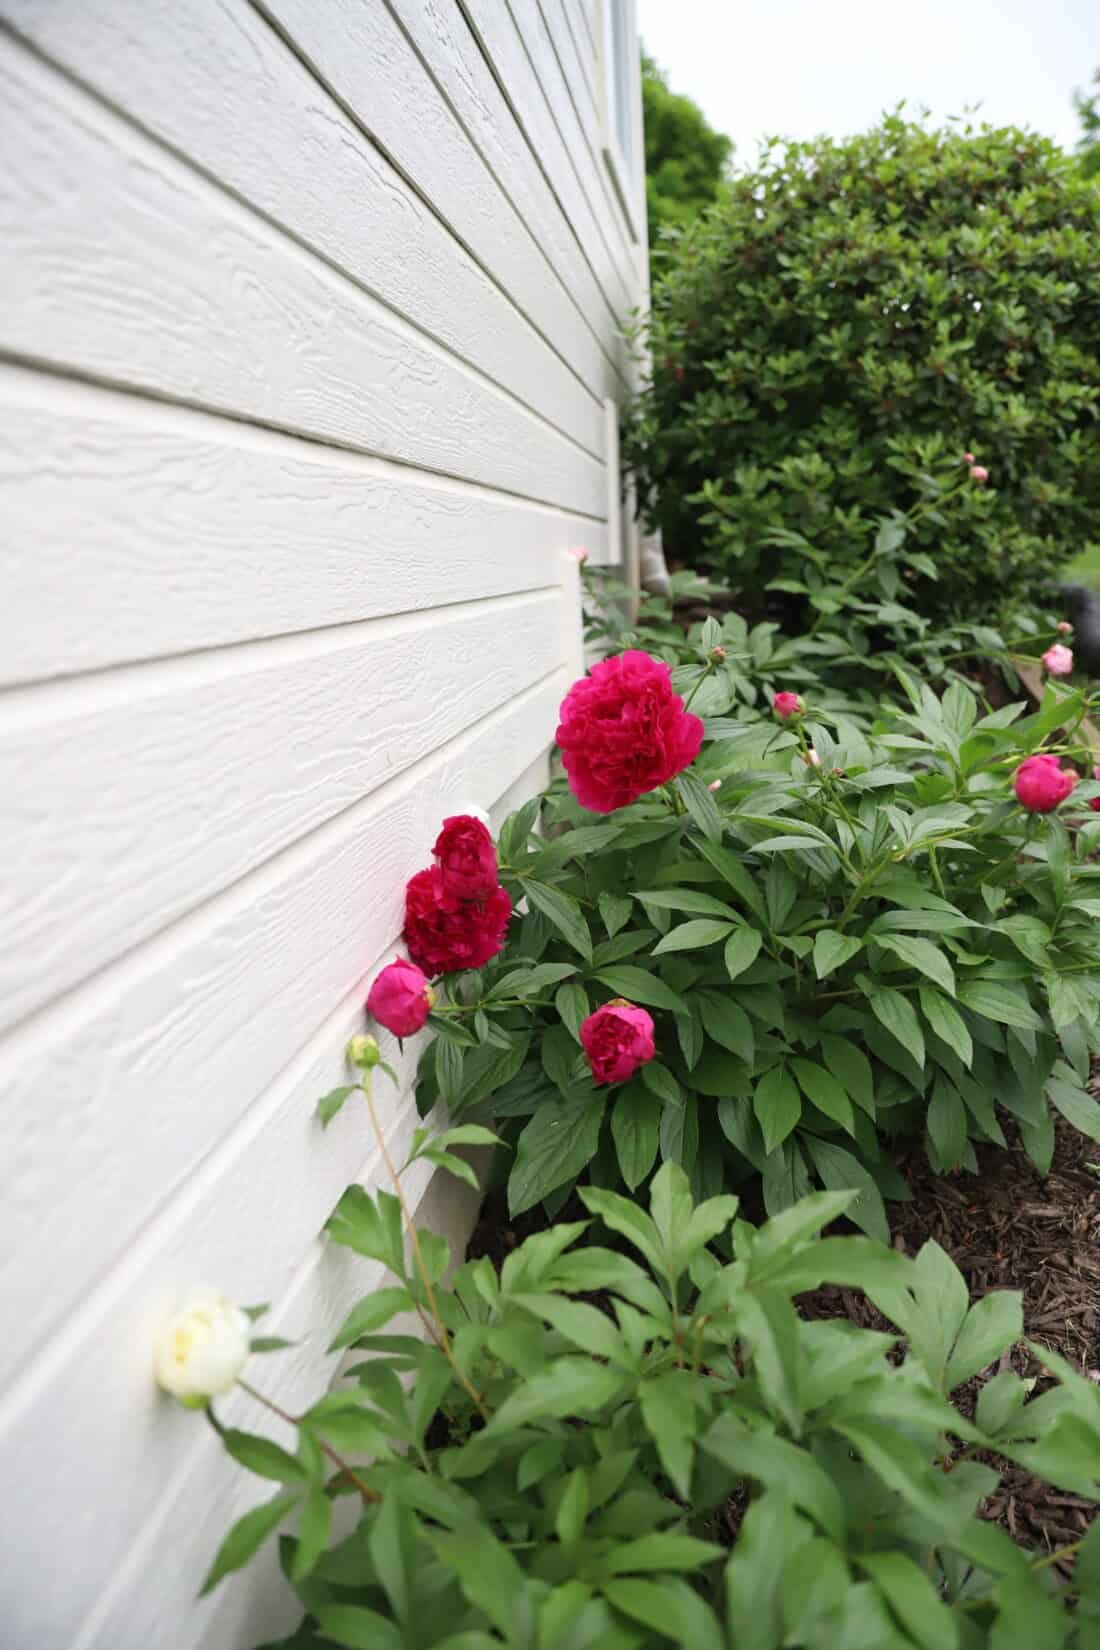 peony plants lined up next to a white house